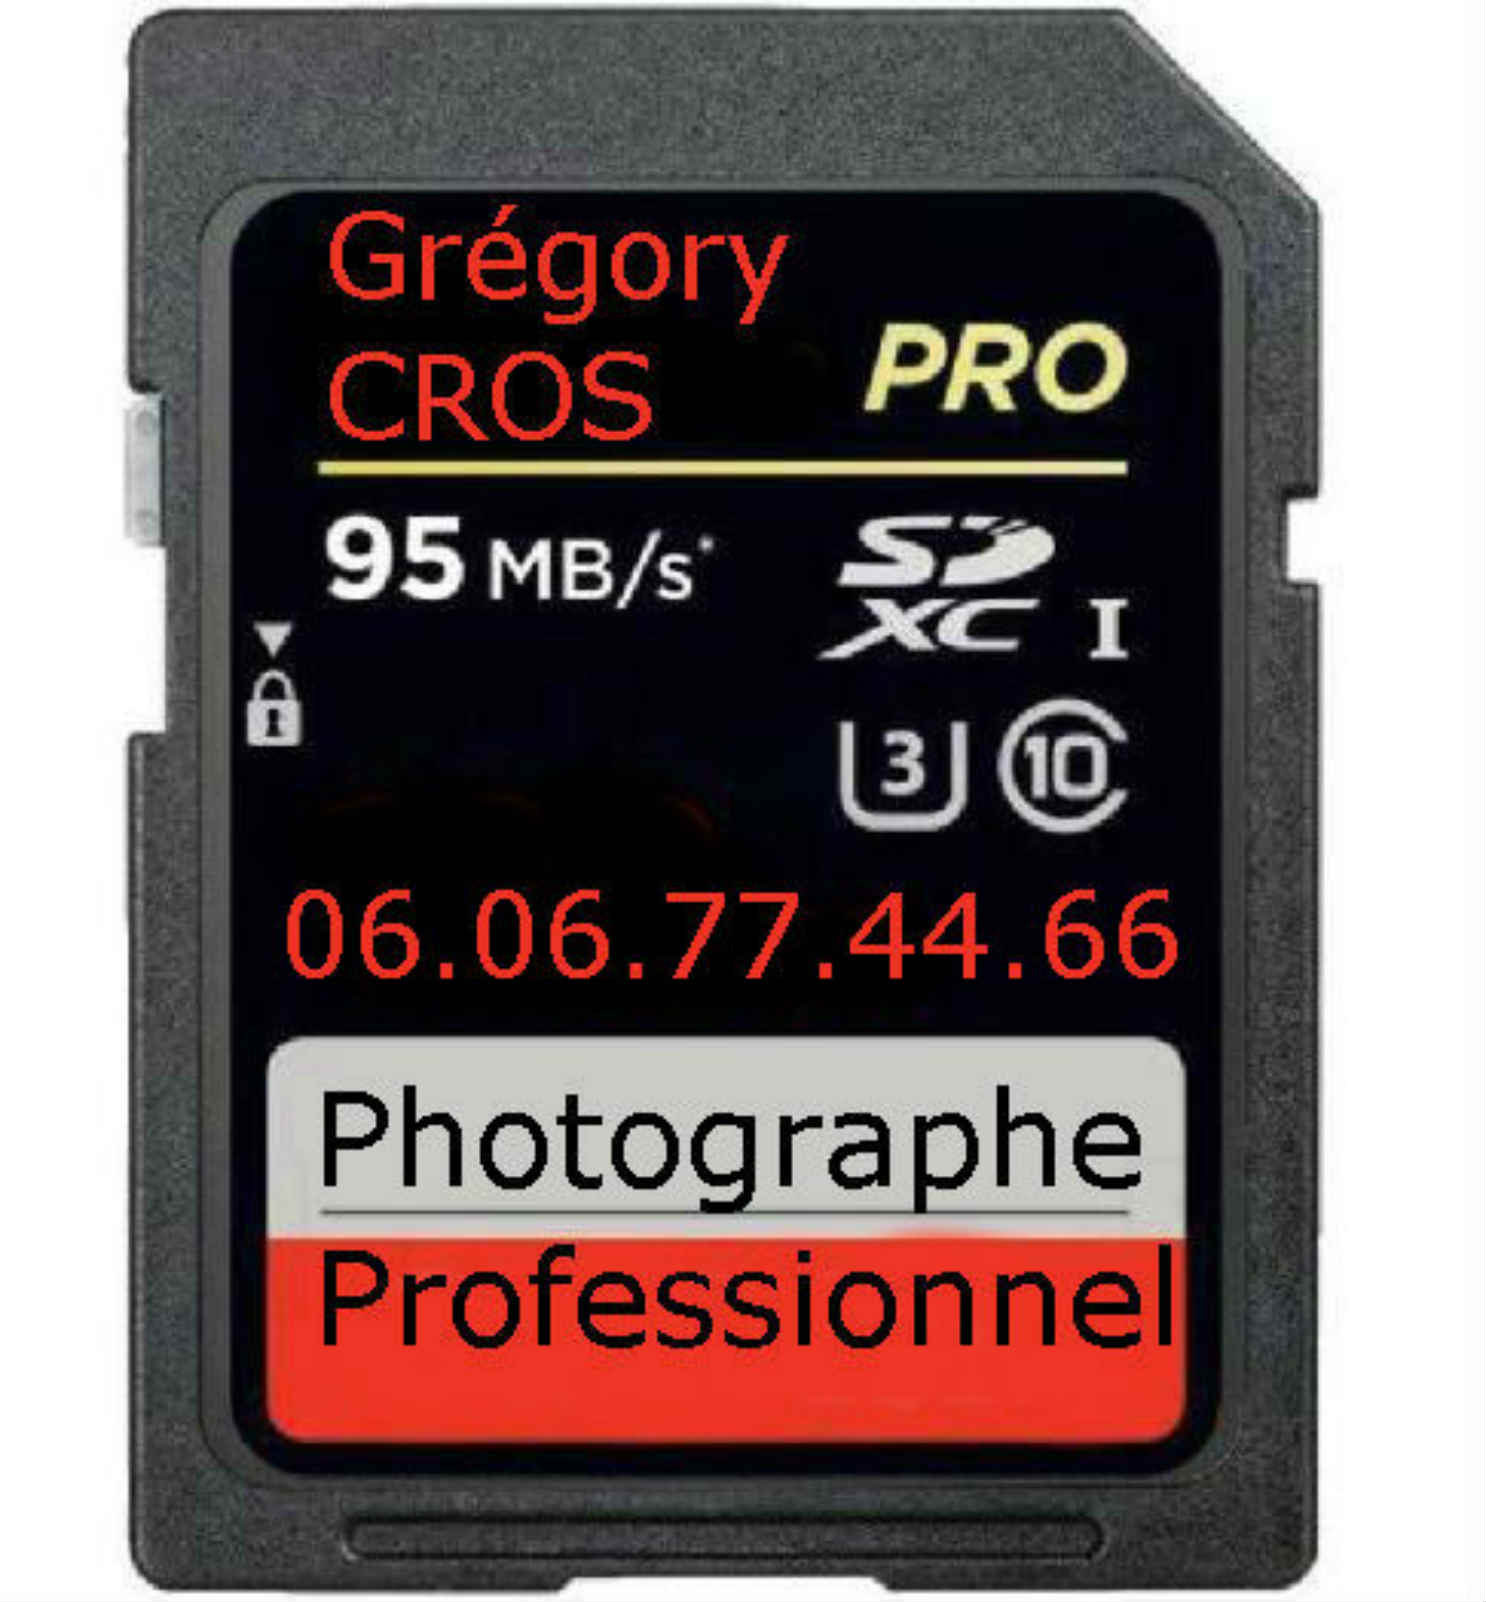 carte memoire Gregory Cros